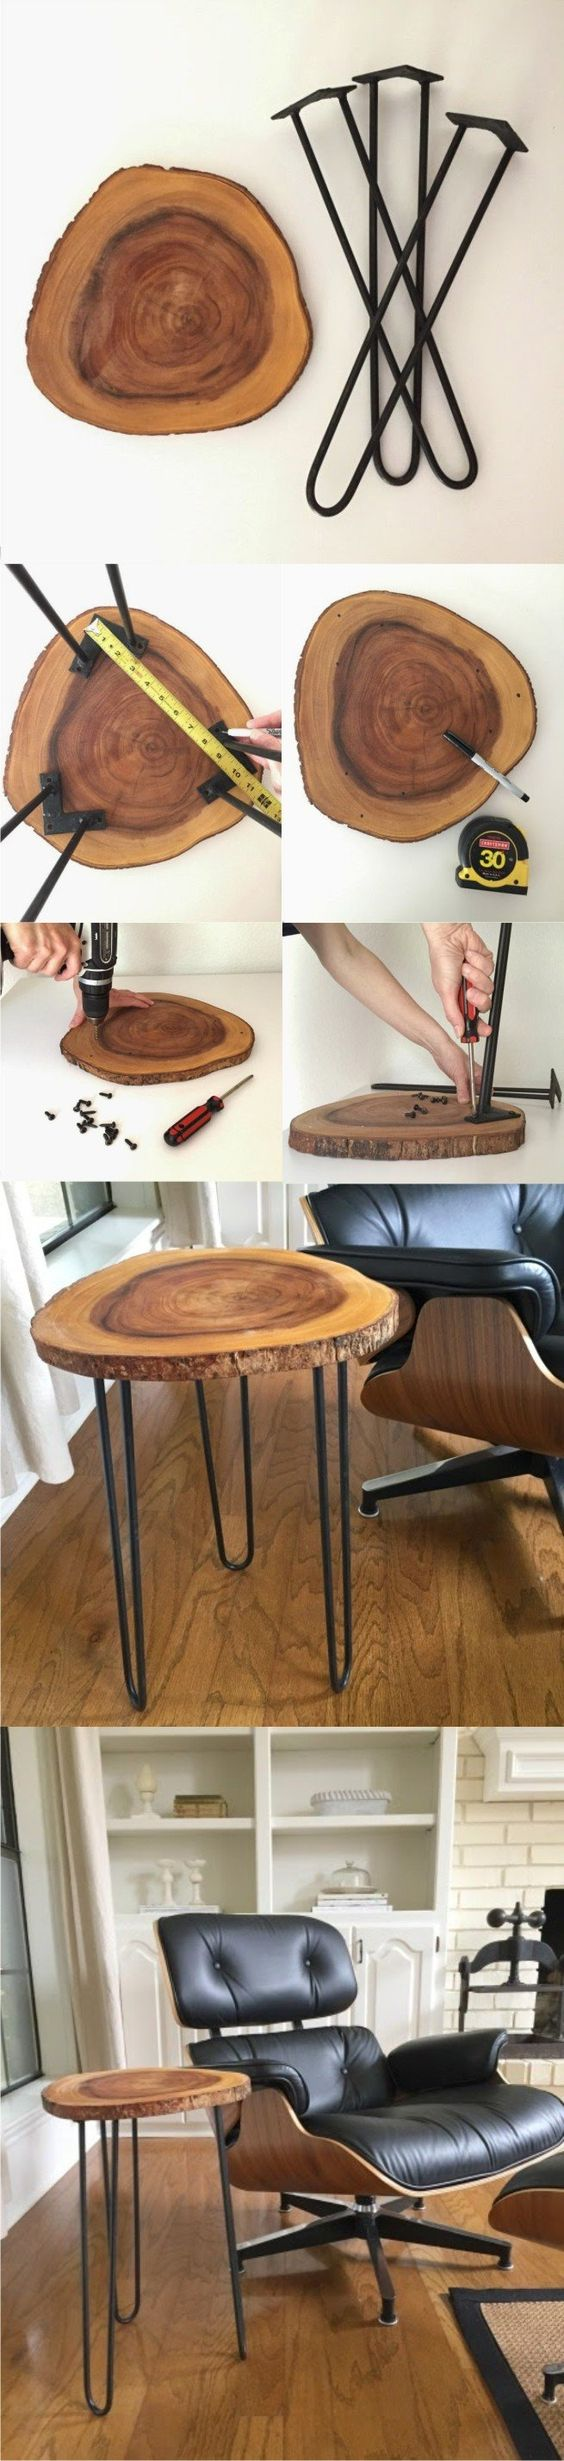 woodworking projects and ideas